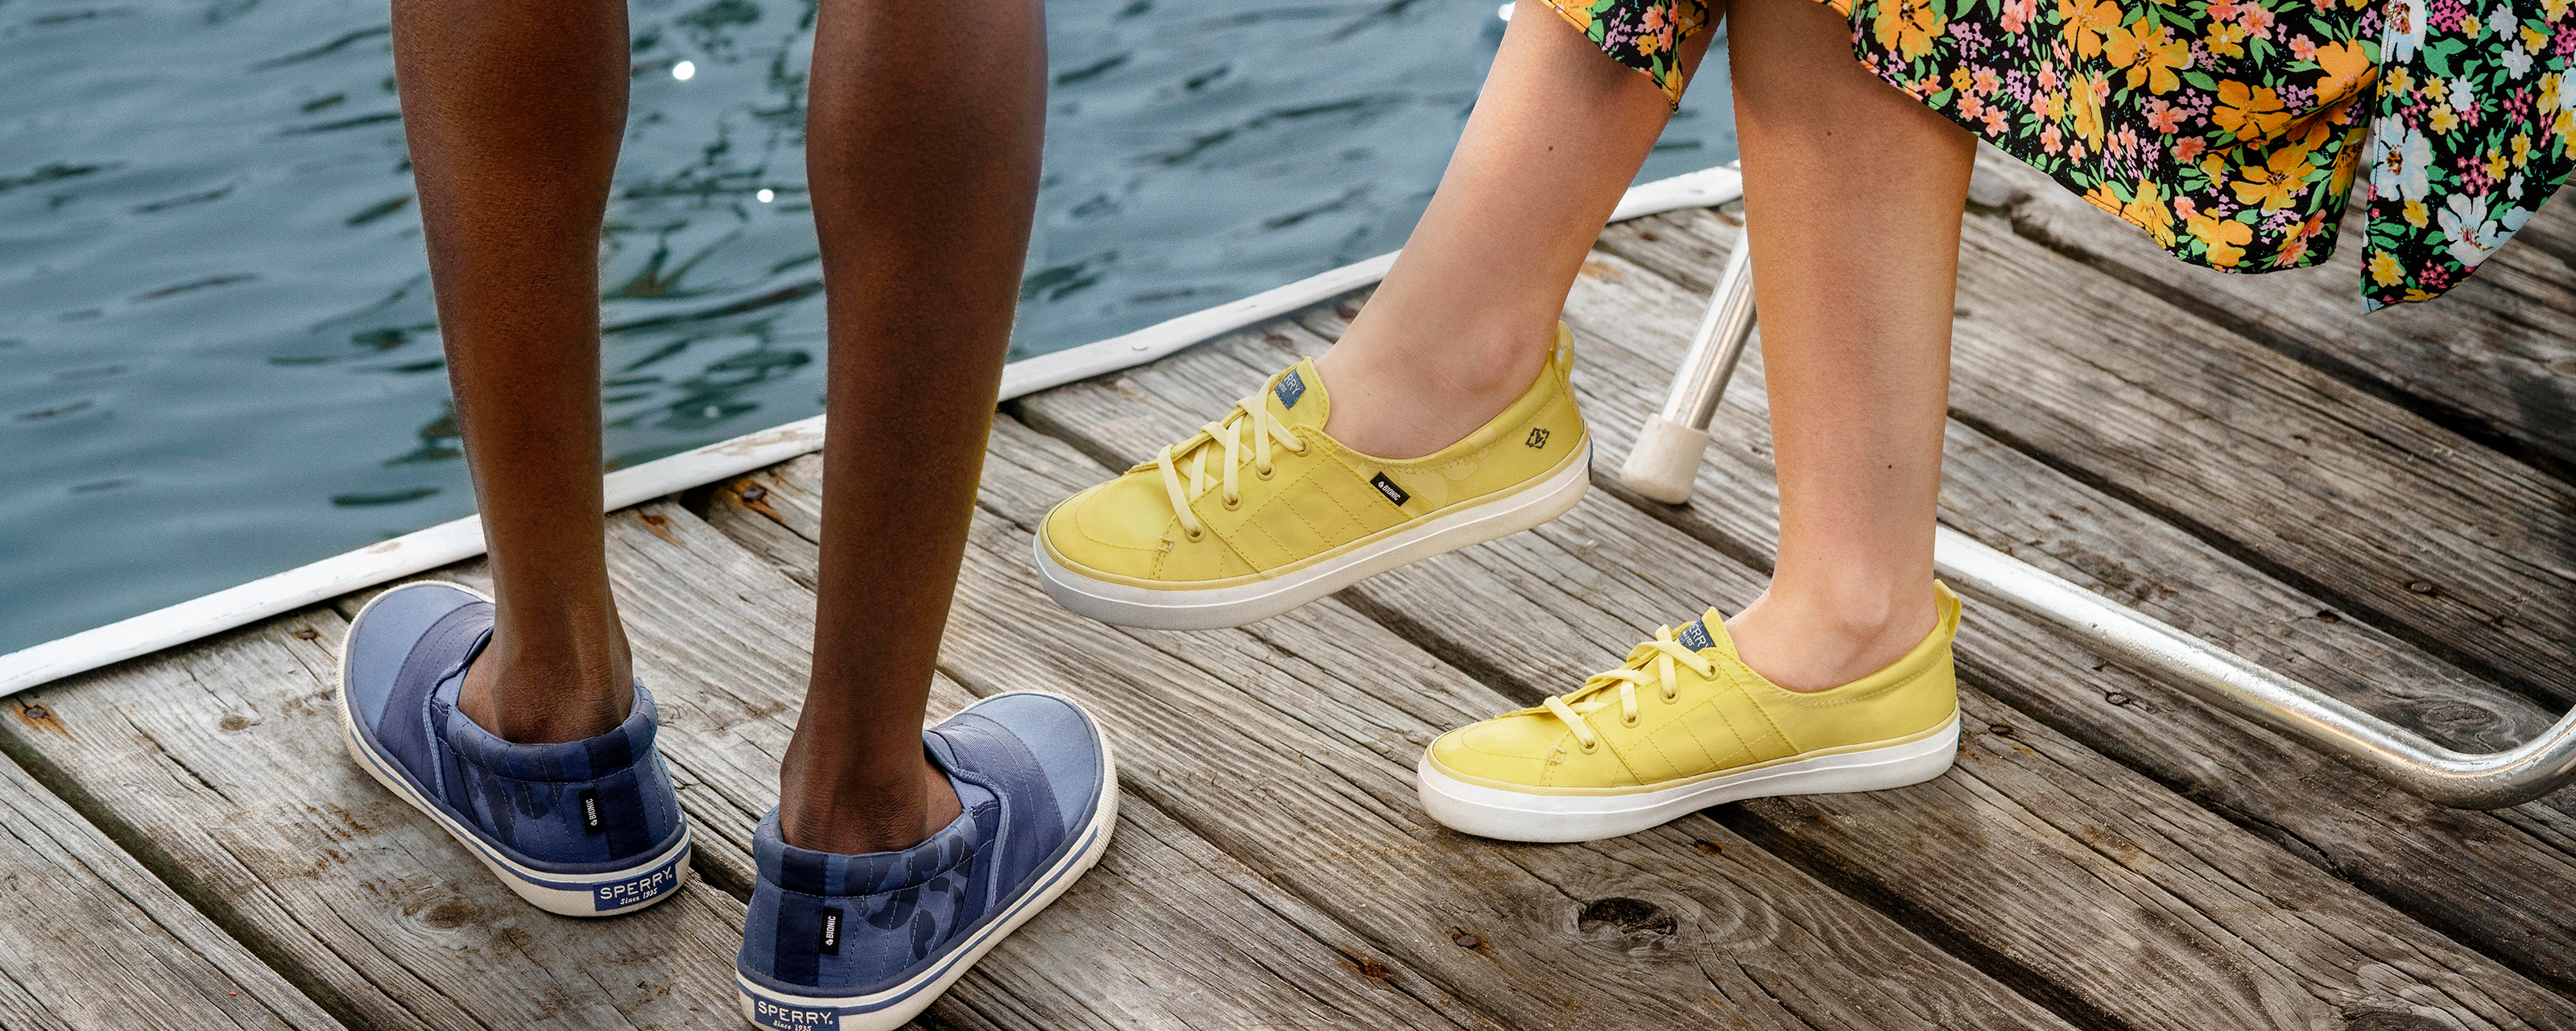 Two people standing on a dock wearing Sperry Bionic sneakers.